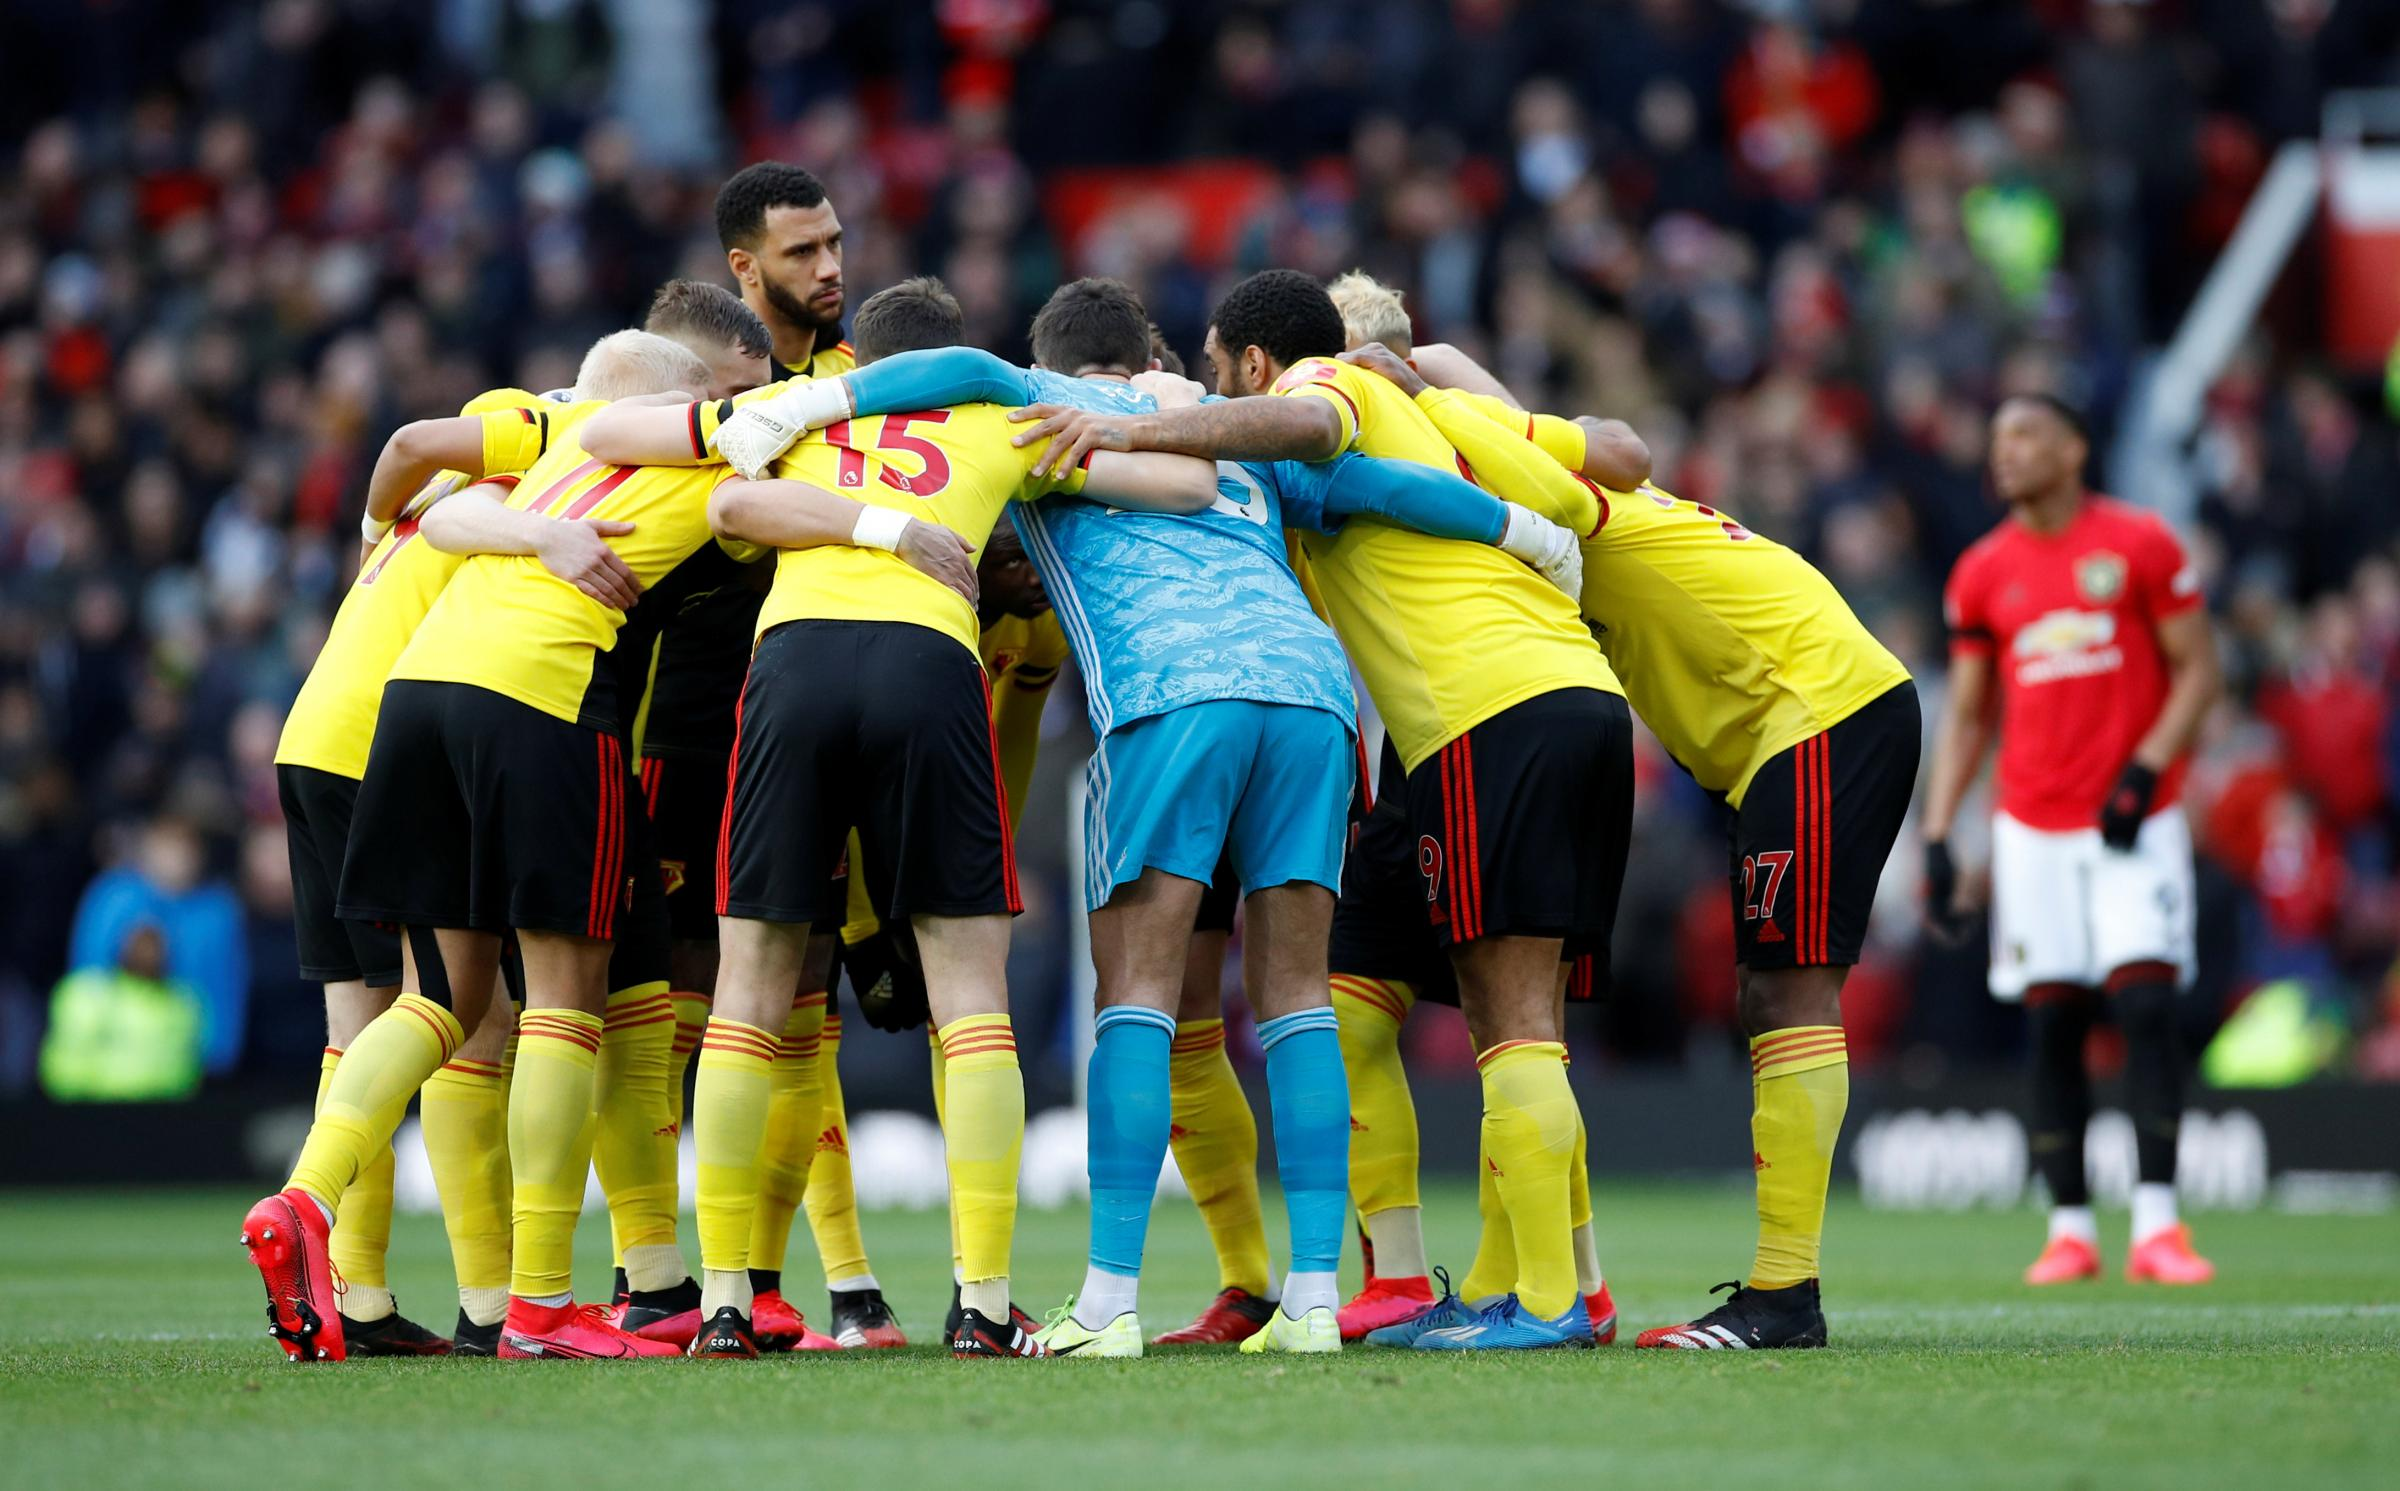 Who is Watford's best player from the current season?